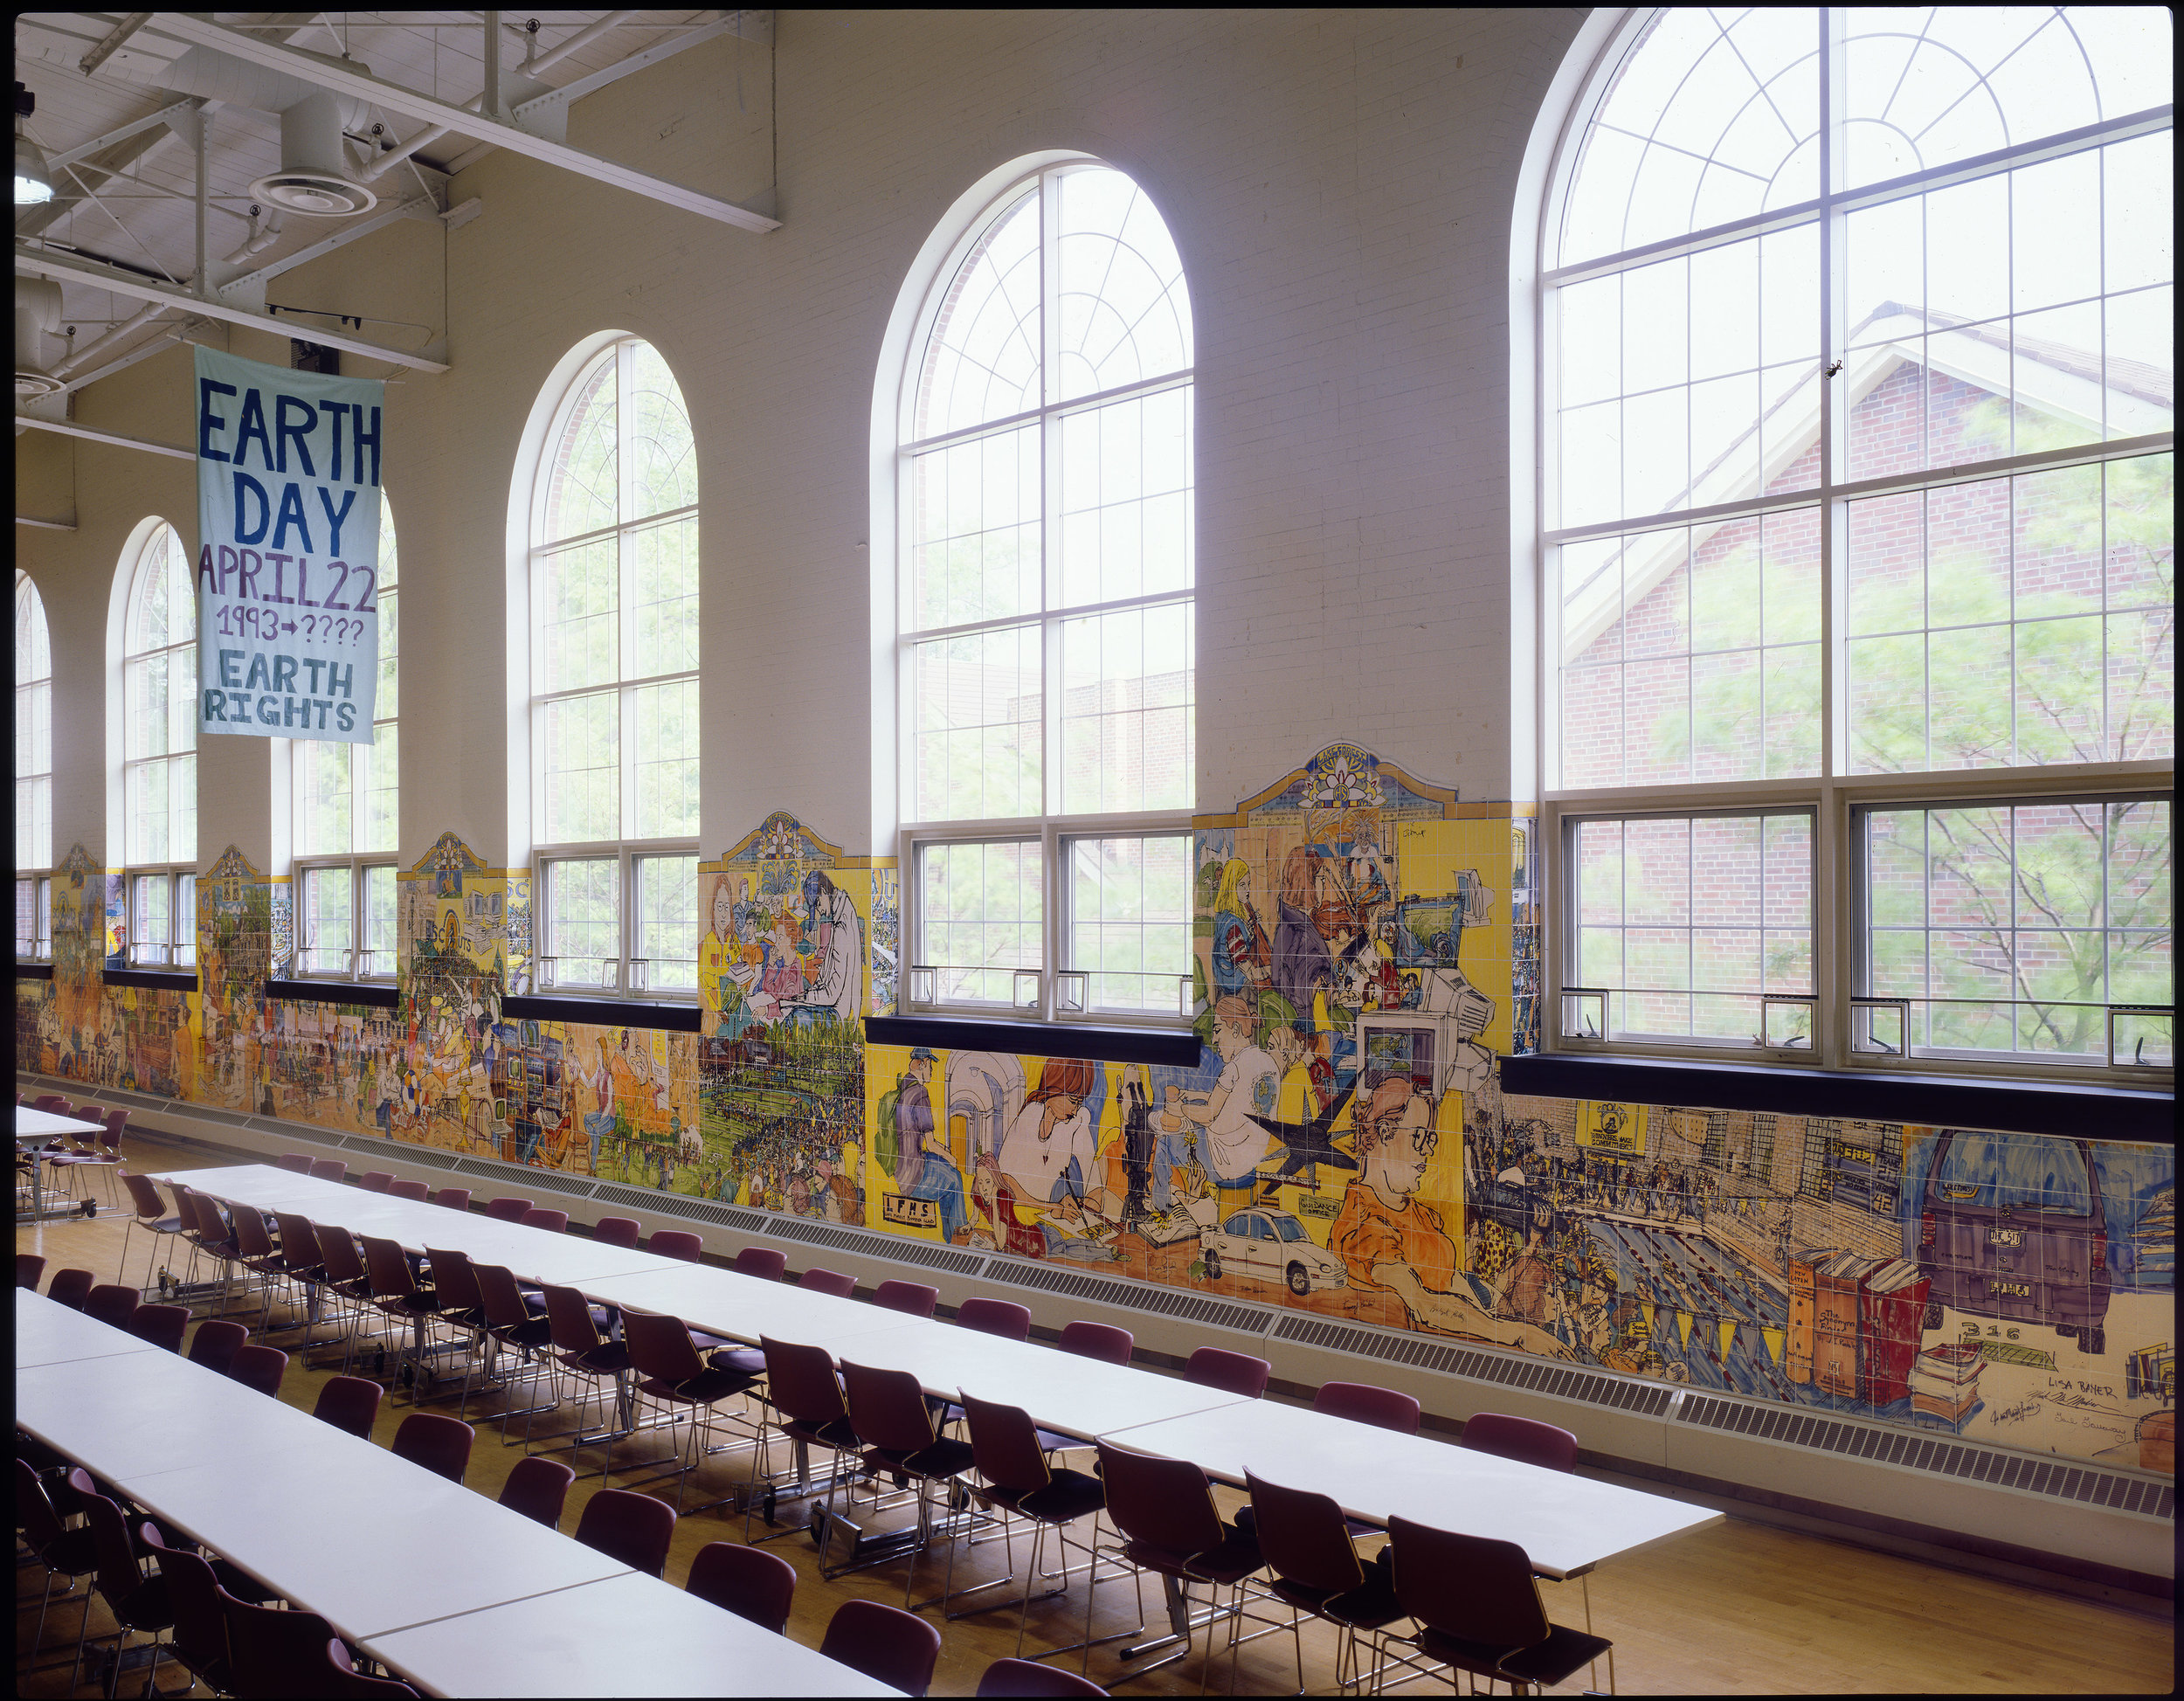 Lake Forest High School Mural, Lake Forest, Illinois - 8' by125' Ceramic Tile  One hundred students helped with the mural and it took two and half years to complete.